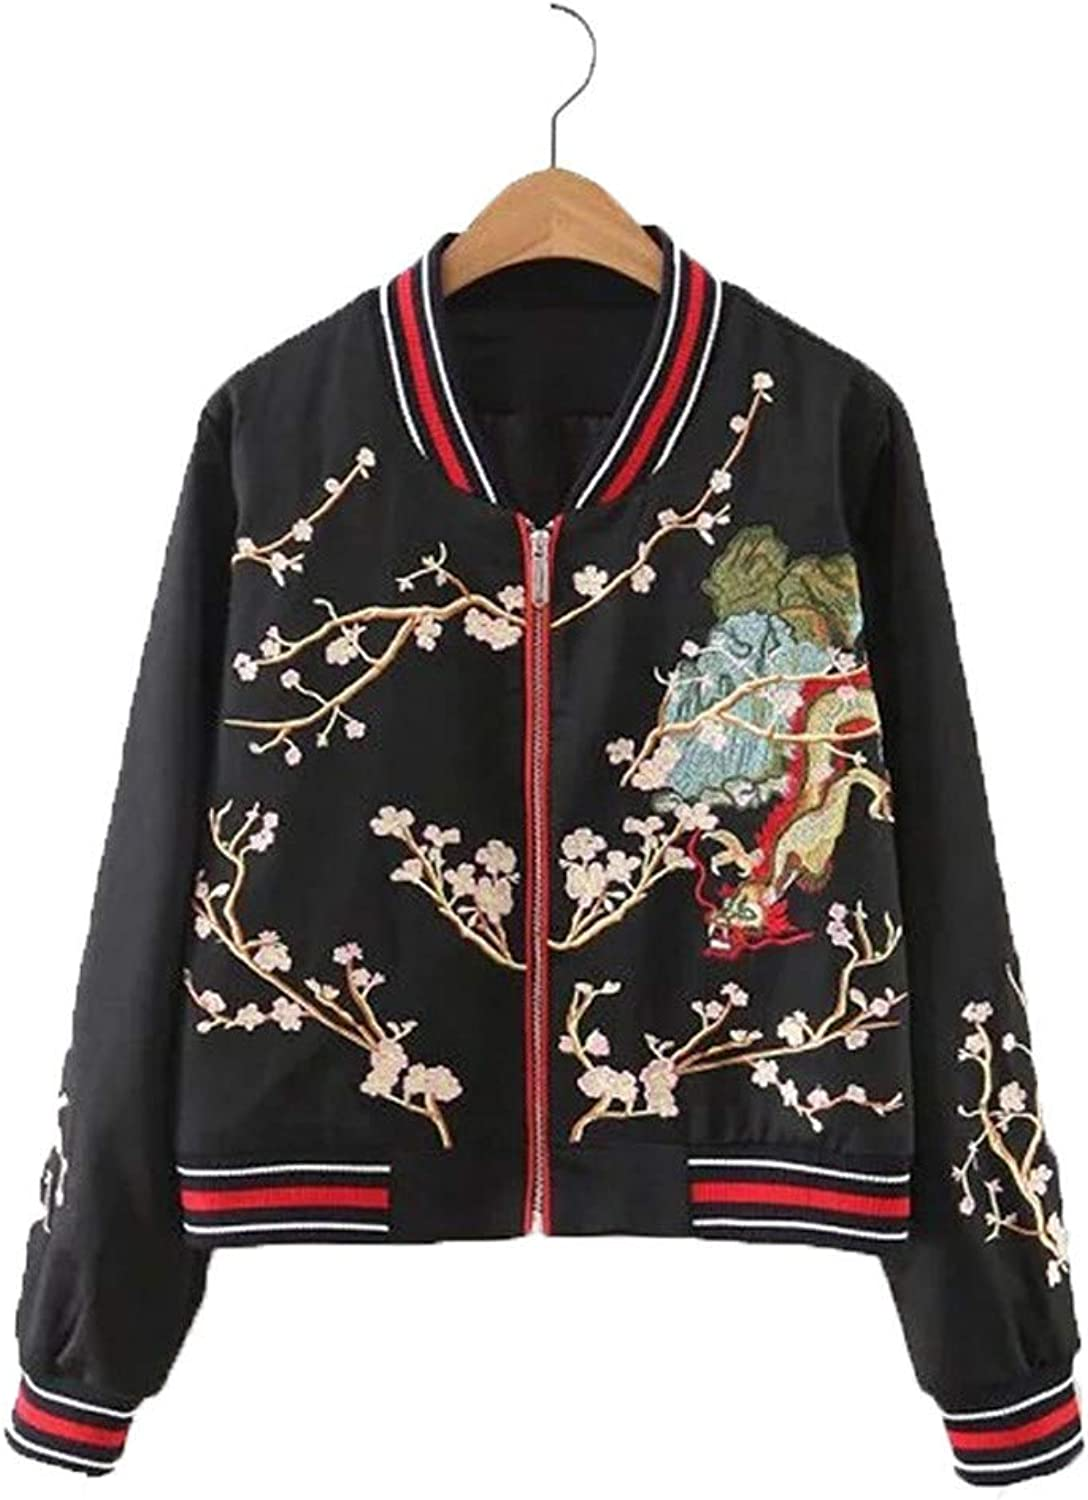 BACHDLS Women's Floral Mountain Satin Green Black Long Sleeve Embroidered Flying Jacket